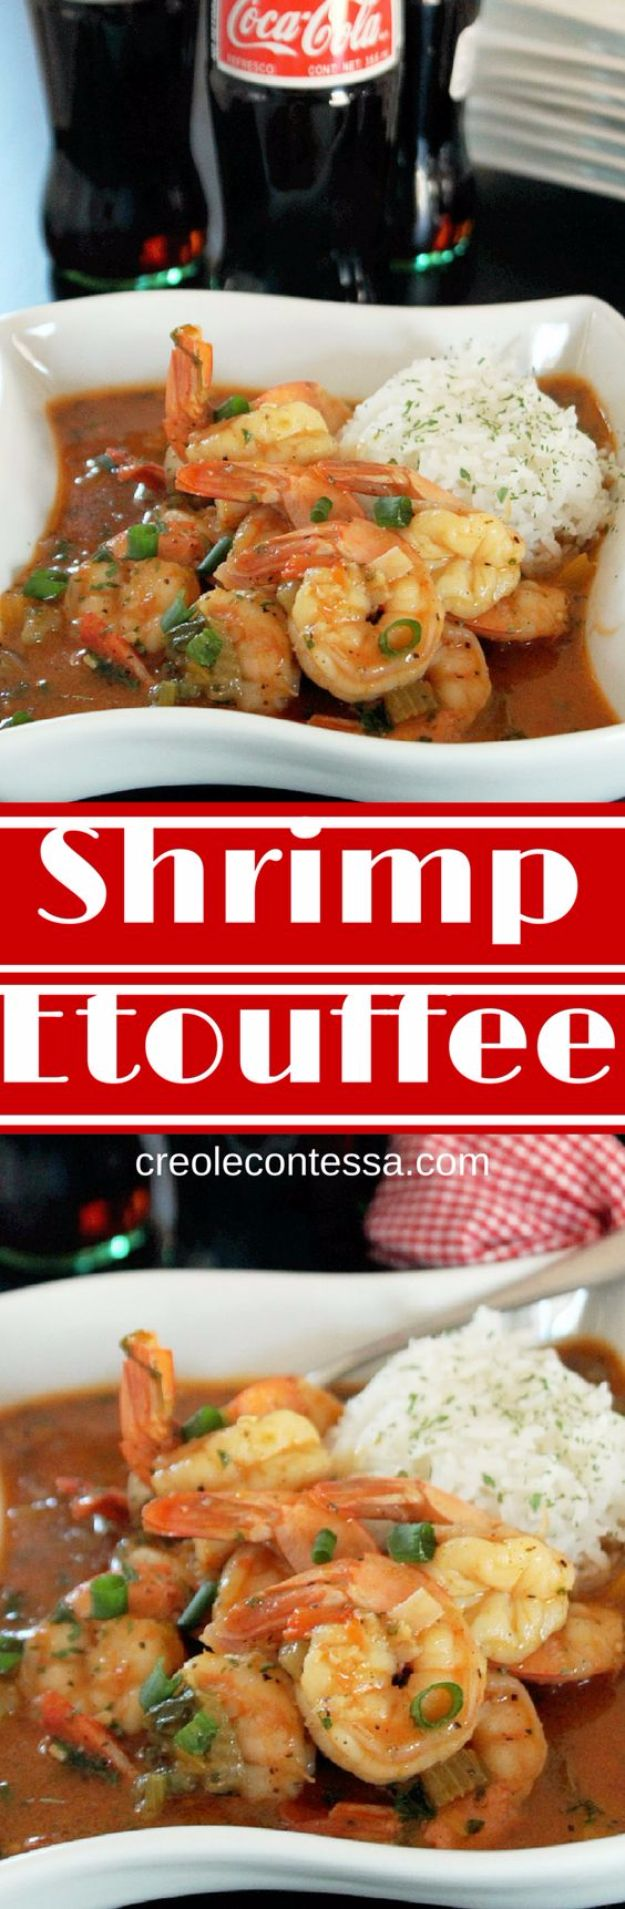 Best Coca Cola Recipes - Shrimp Etouffee with Coca Cola - Make Awesome Coke Chicken, Coca Cola Cake, Meatballs, Sodas, Drinks, Sweets, Dinners, Meat, Slow Cooker and Recipe Ideas #cocacola #recipes #desserts